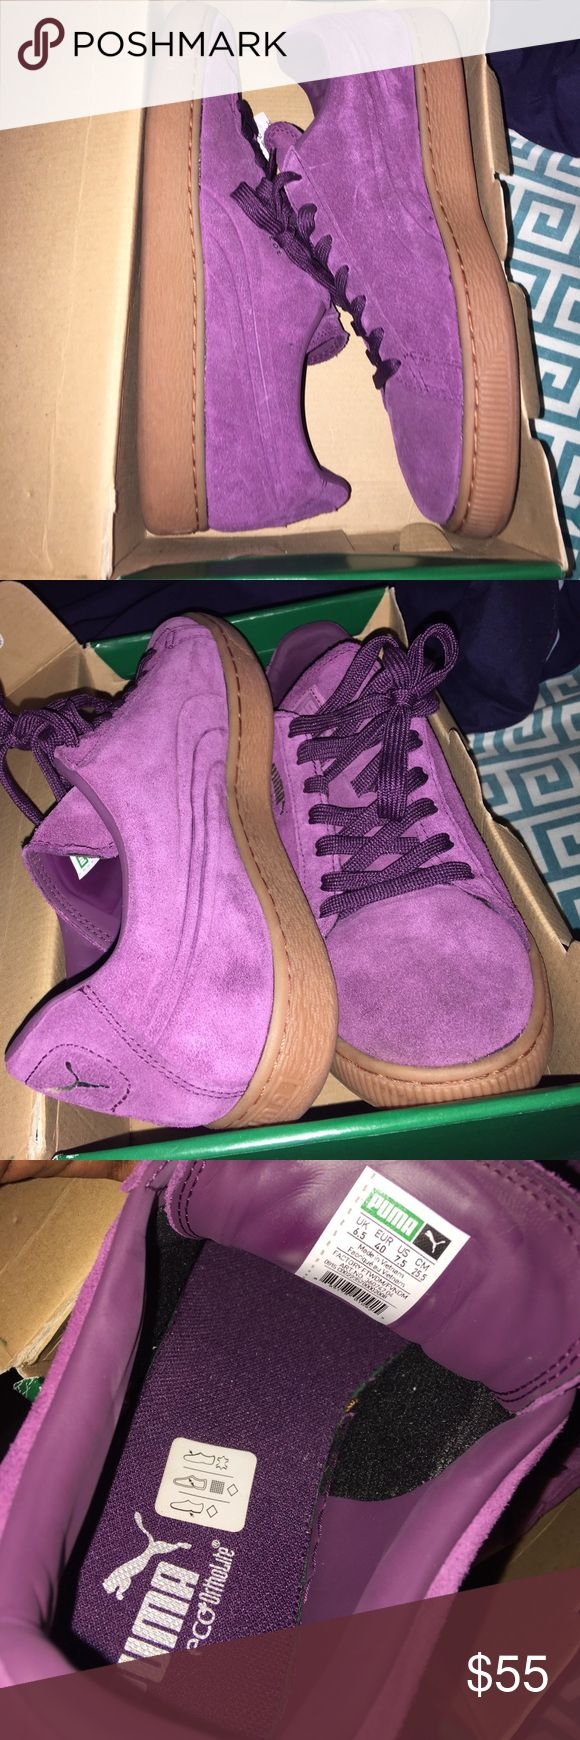 Plum Suede Puma sneakers ! Men's size 7.5. Plum color, gum sole, suede, bought for $65, but willing to accept $55. Worn once, literally. They're too big for me. Puma Shoes Sneakers